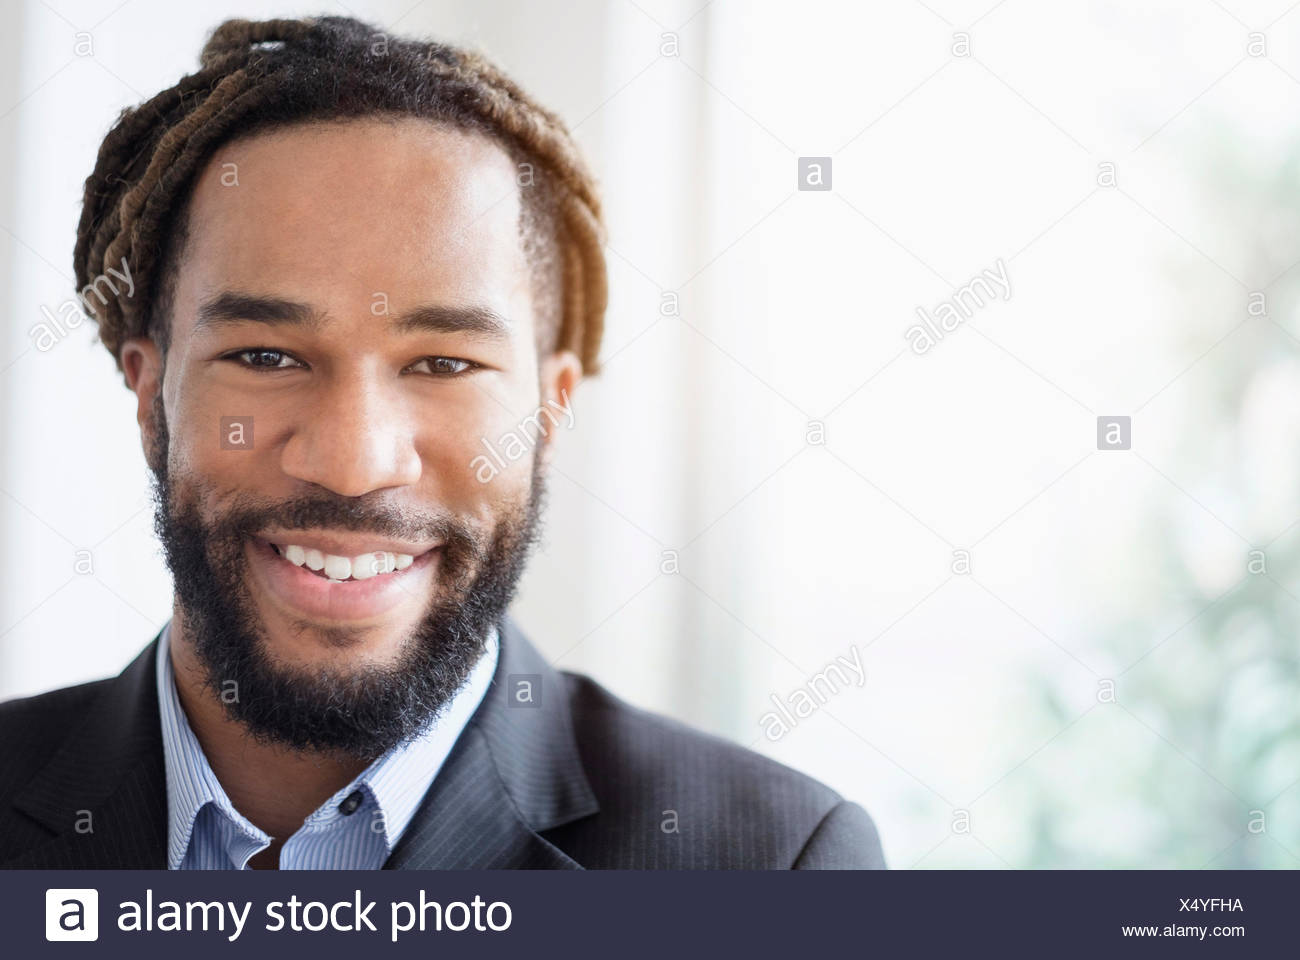 Portrait of smiley businessman wearing suit - Stock Image